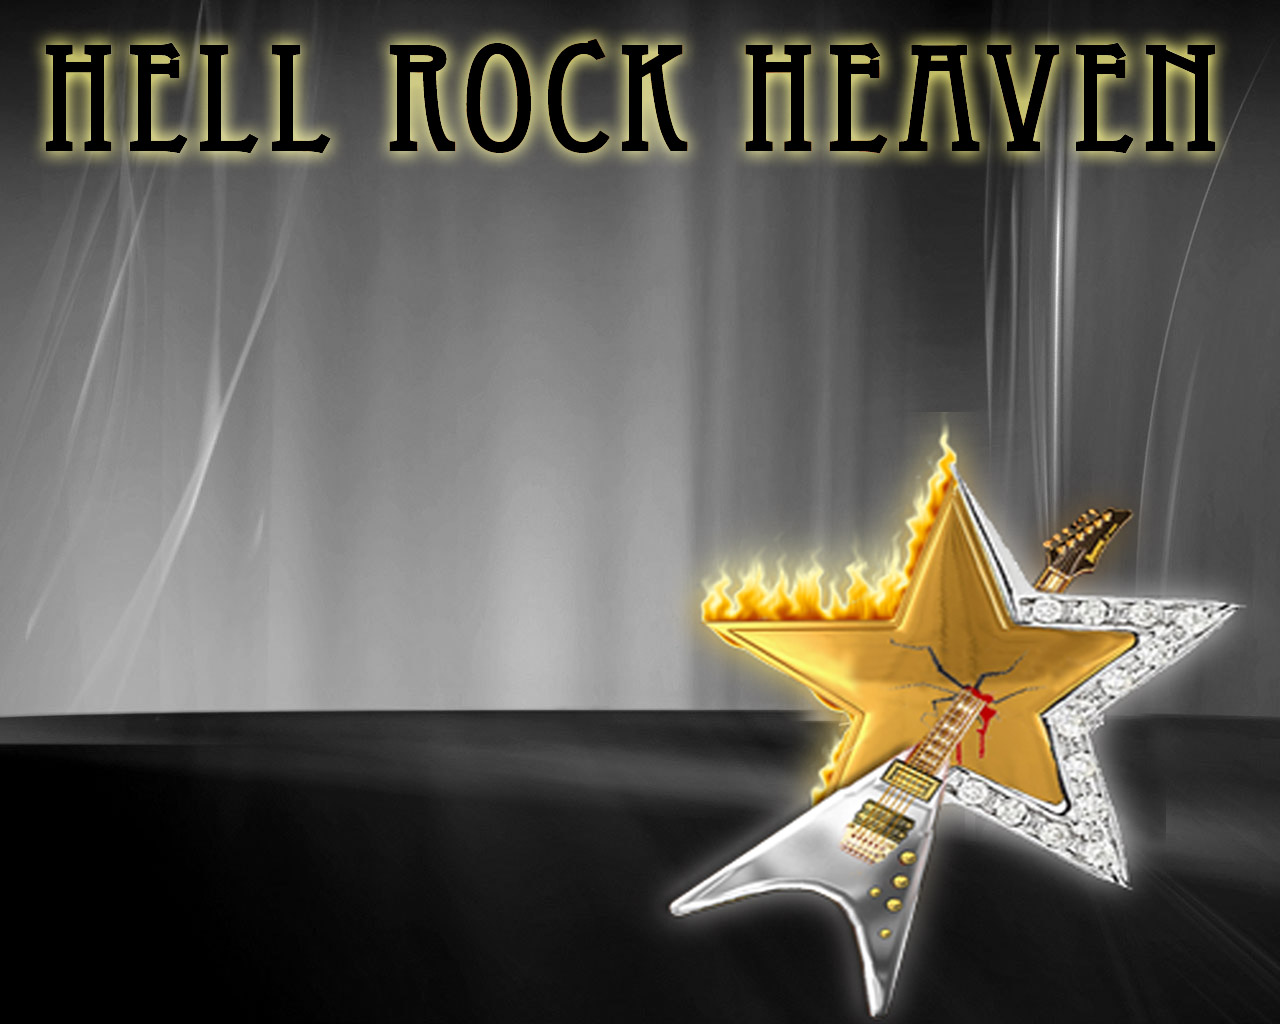 HRH (Hell Rock Heaven)